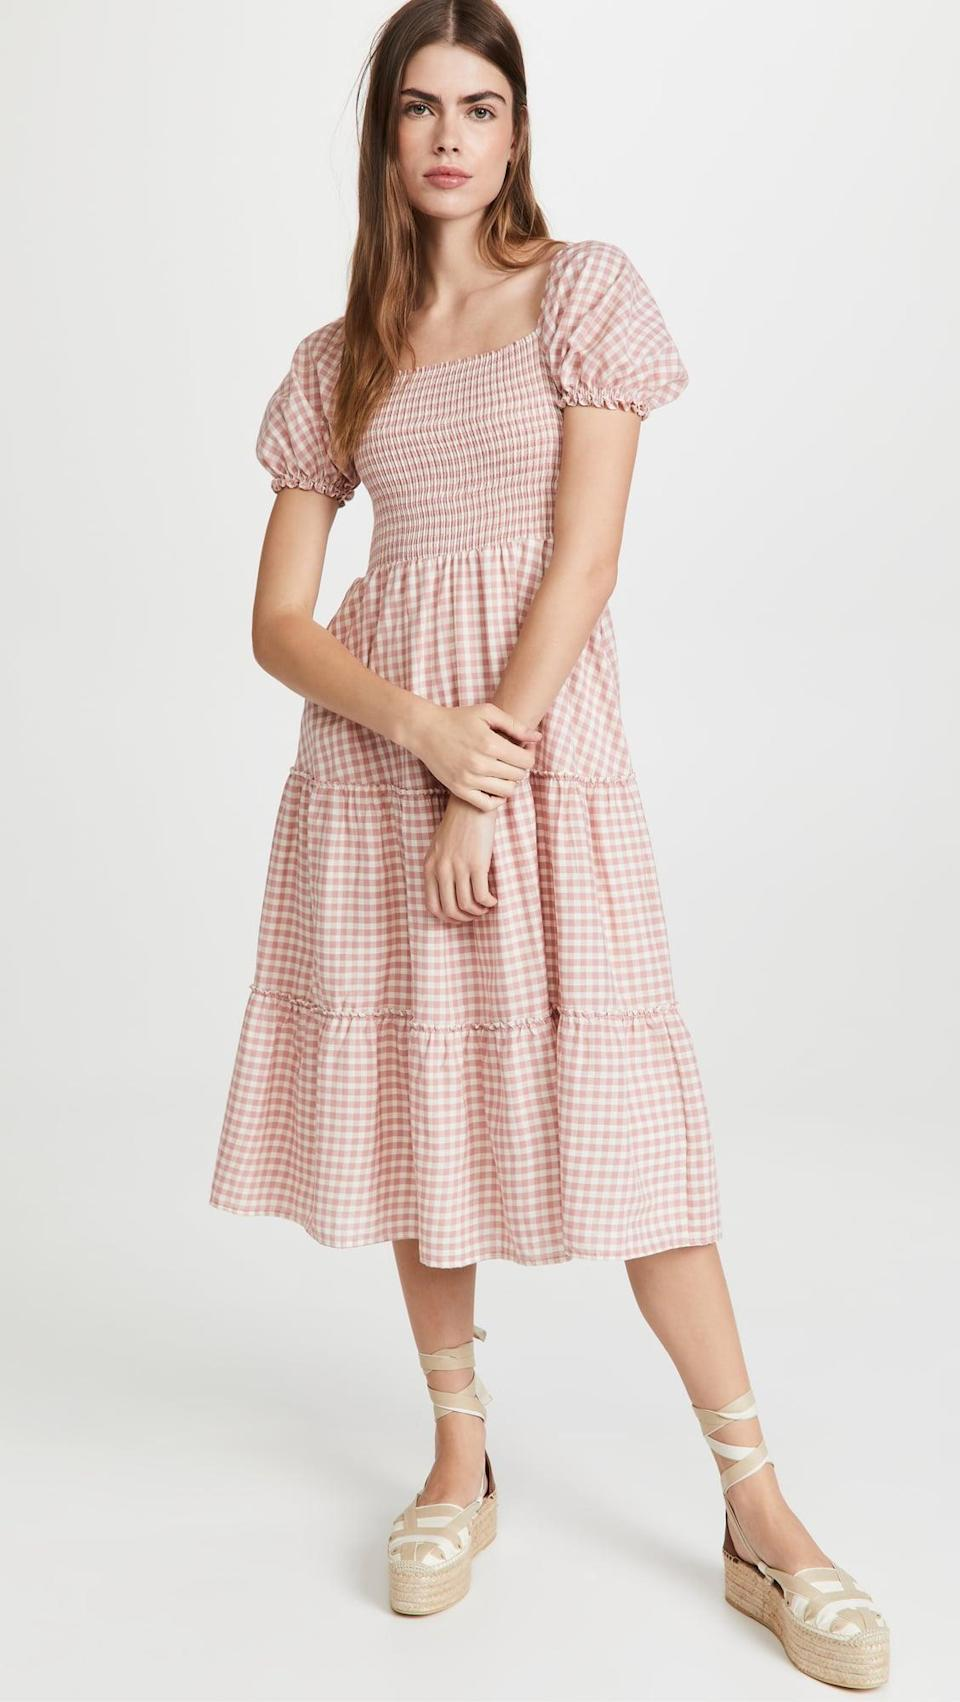 <p>The puff-sleeves on this <span>Peixoto Coco Midi Dress</span> ($148) are a sweet touch. Throw this on during warmer September days.</p>